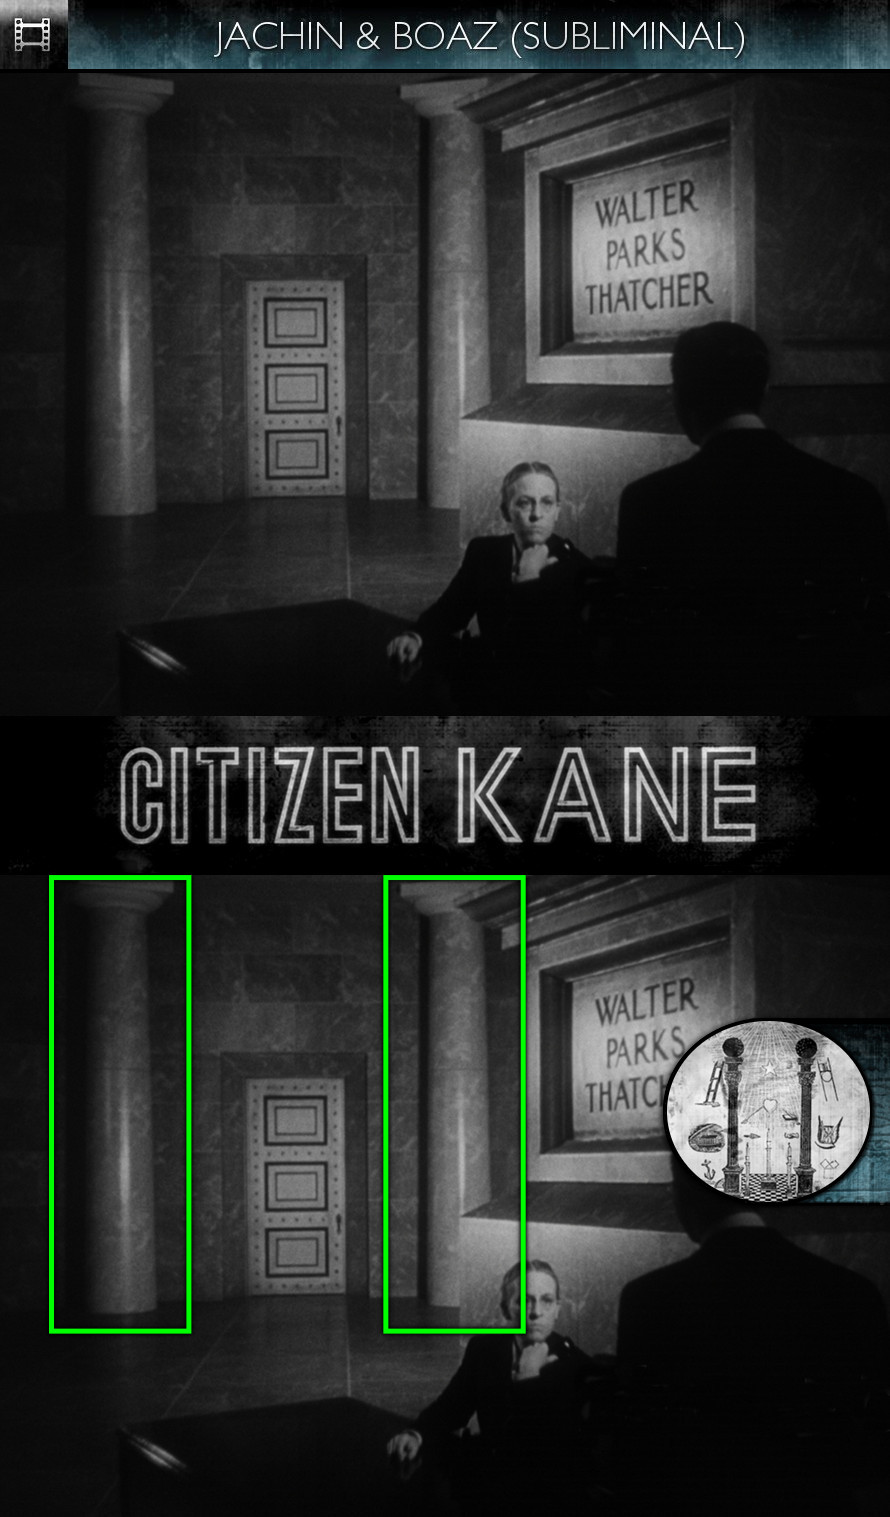 Citizen Kane (1941) - Jachin & Boaz - Subliminal